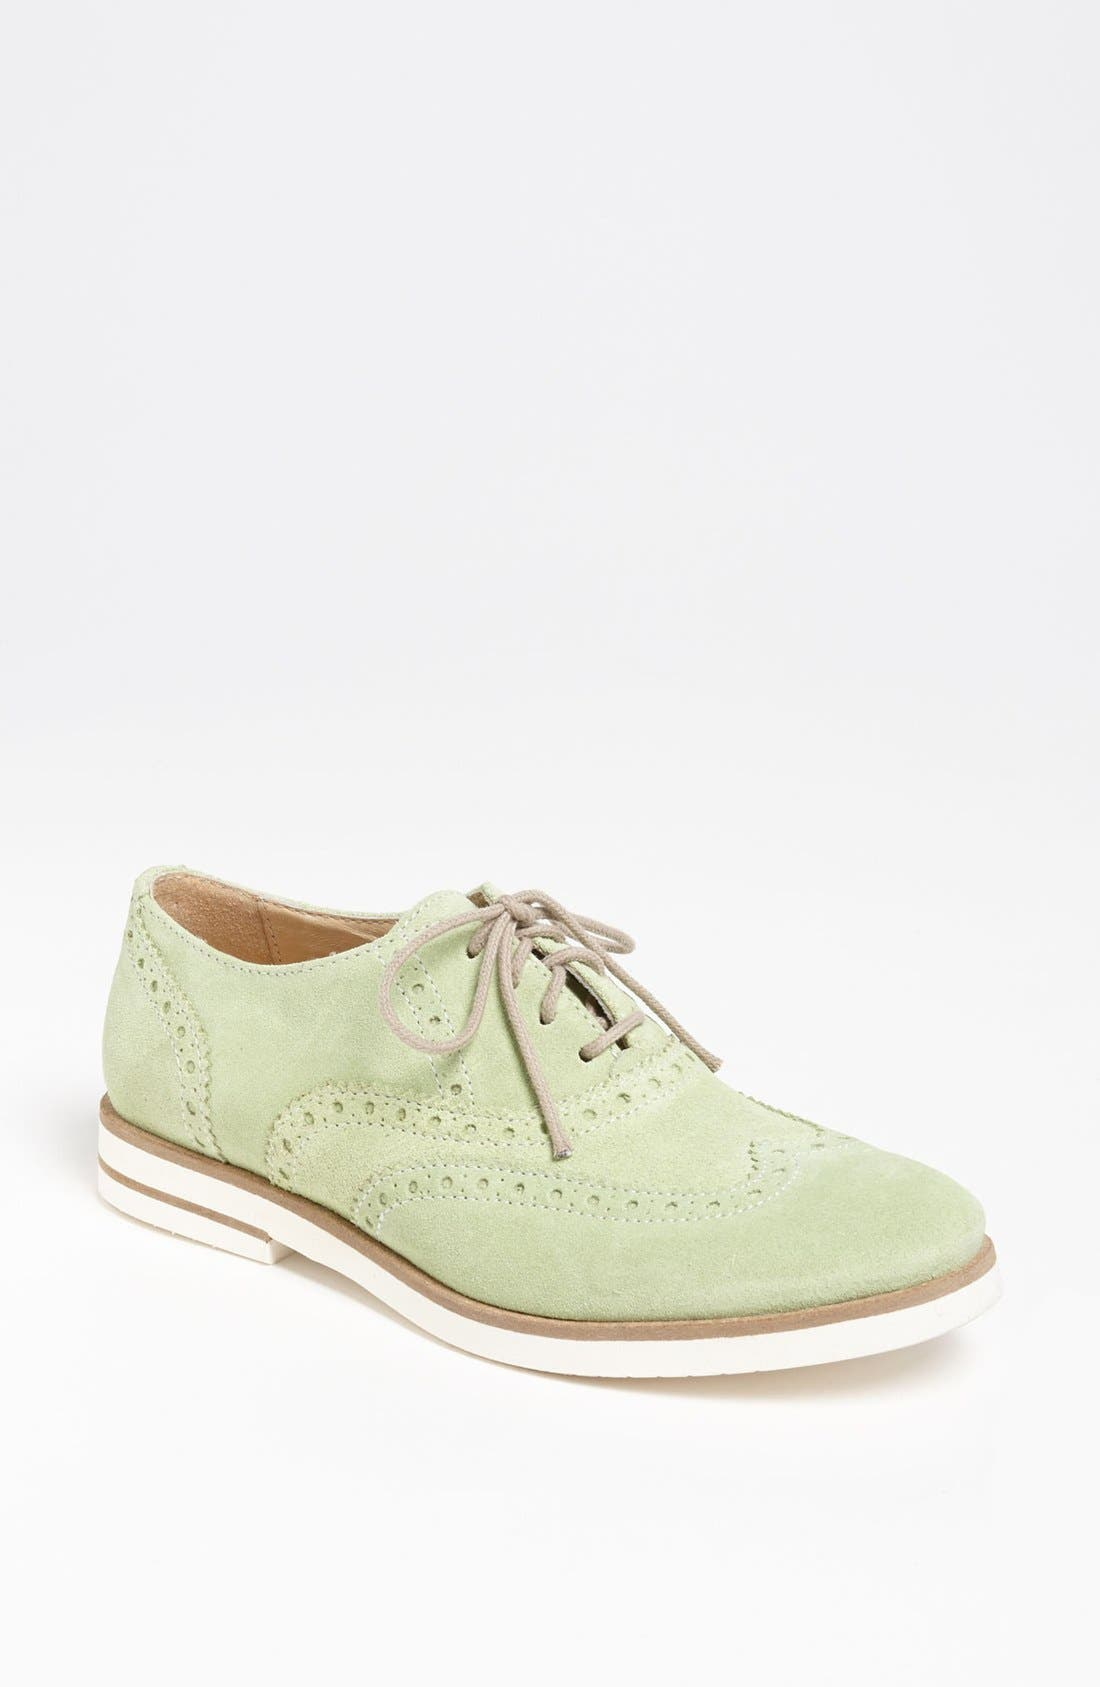 Main Image - J.P. Camps Suede Oxford